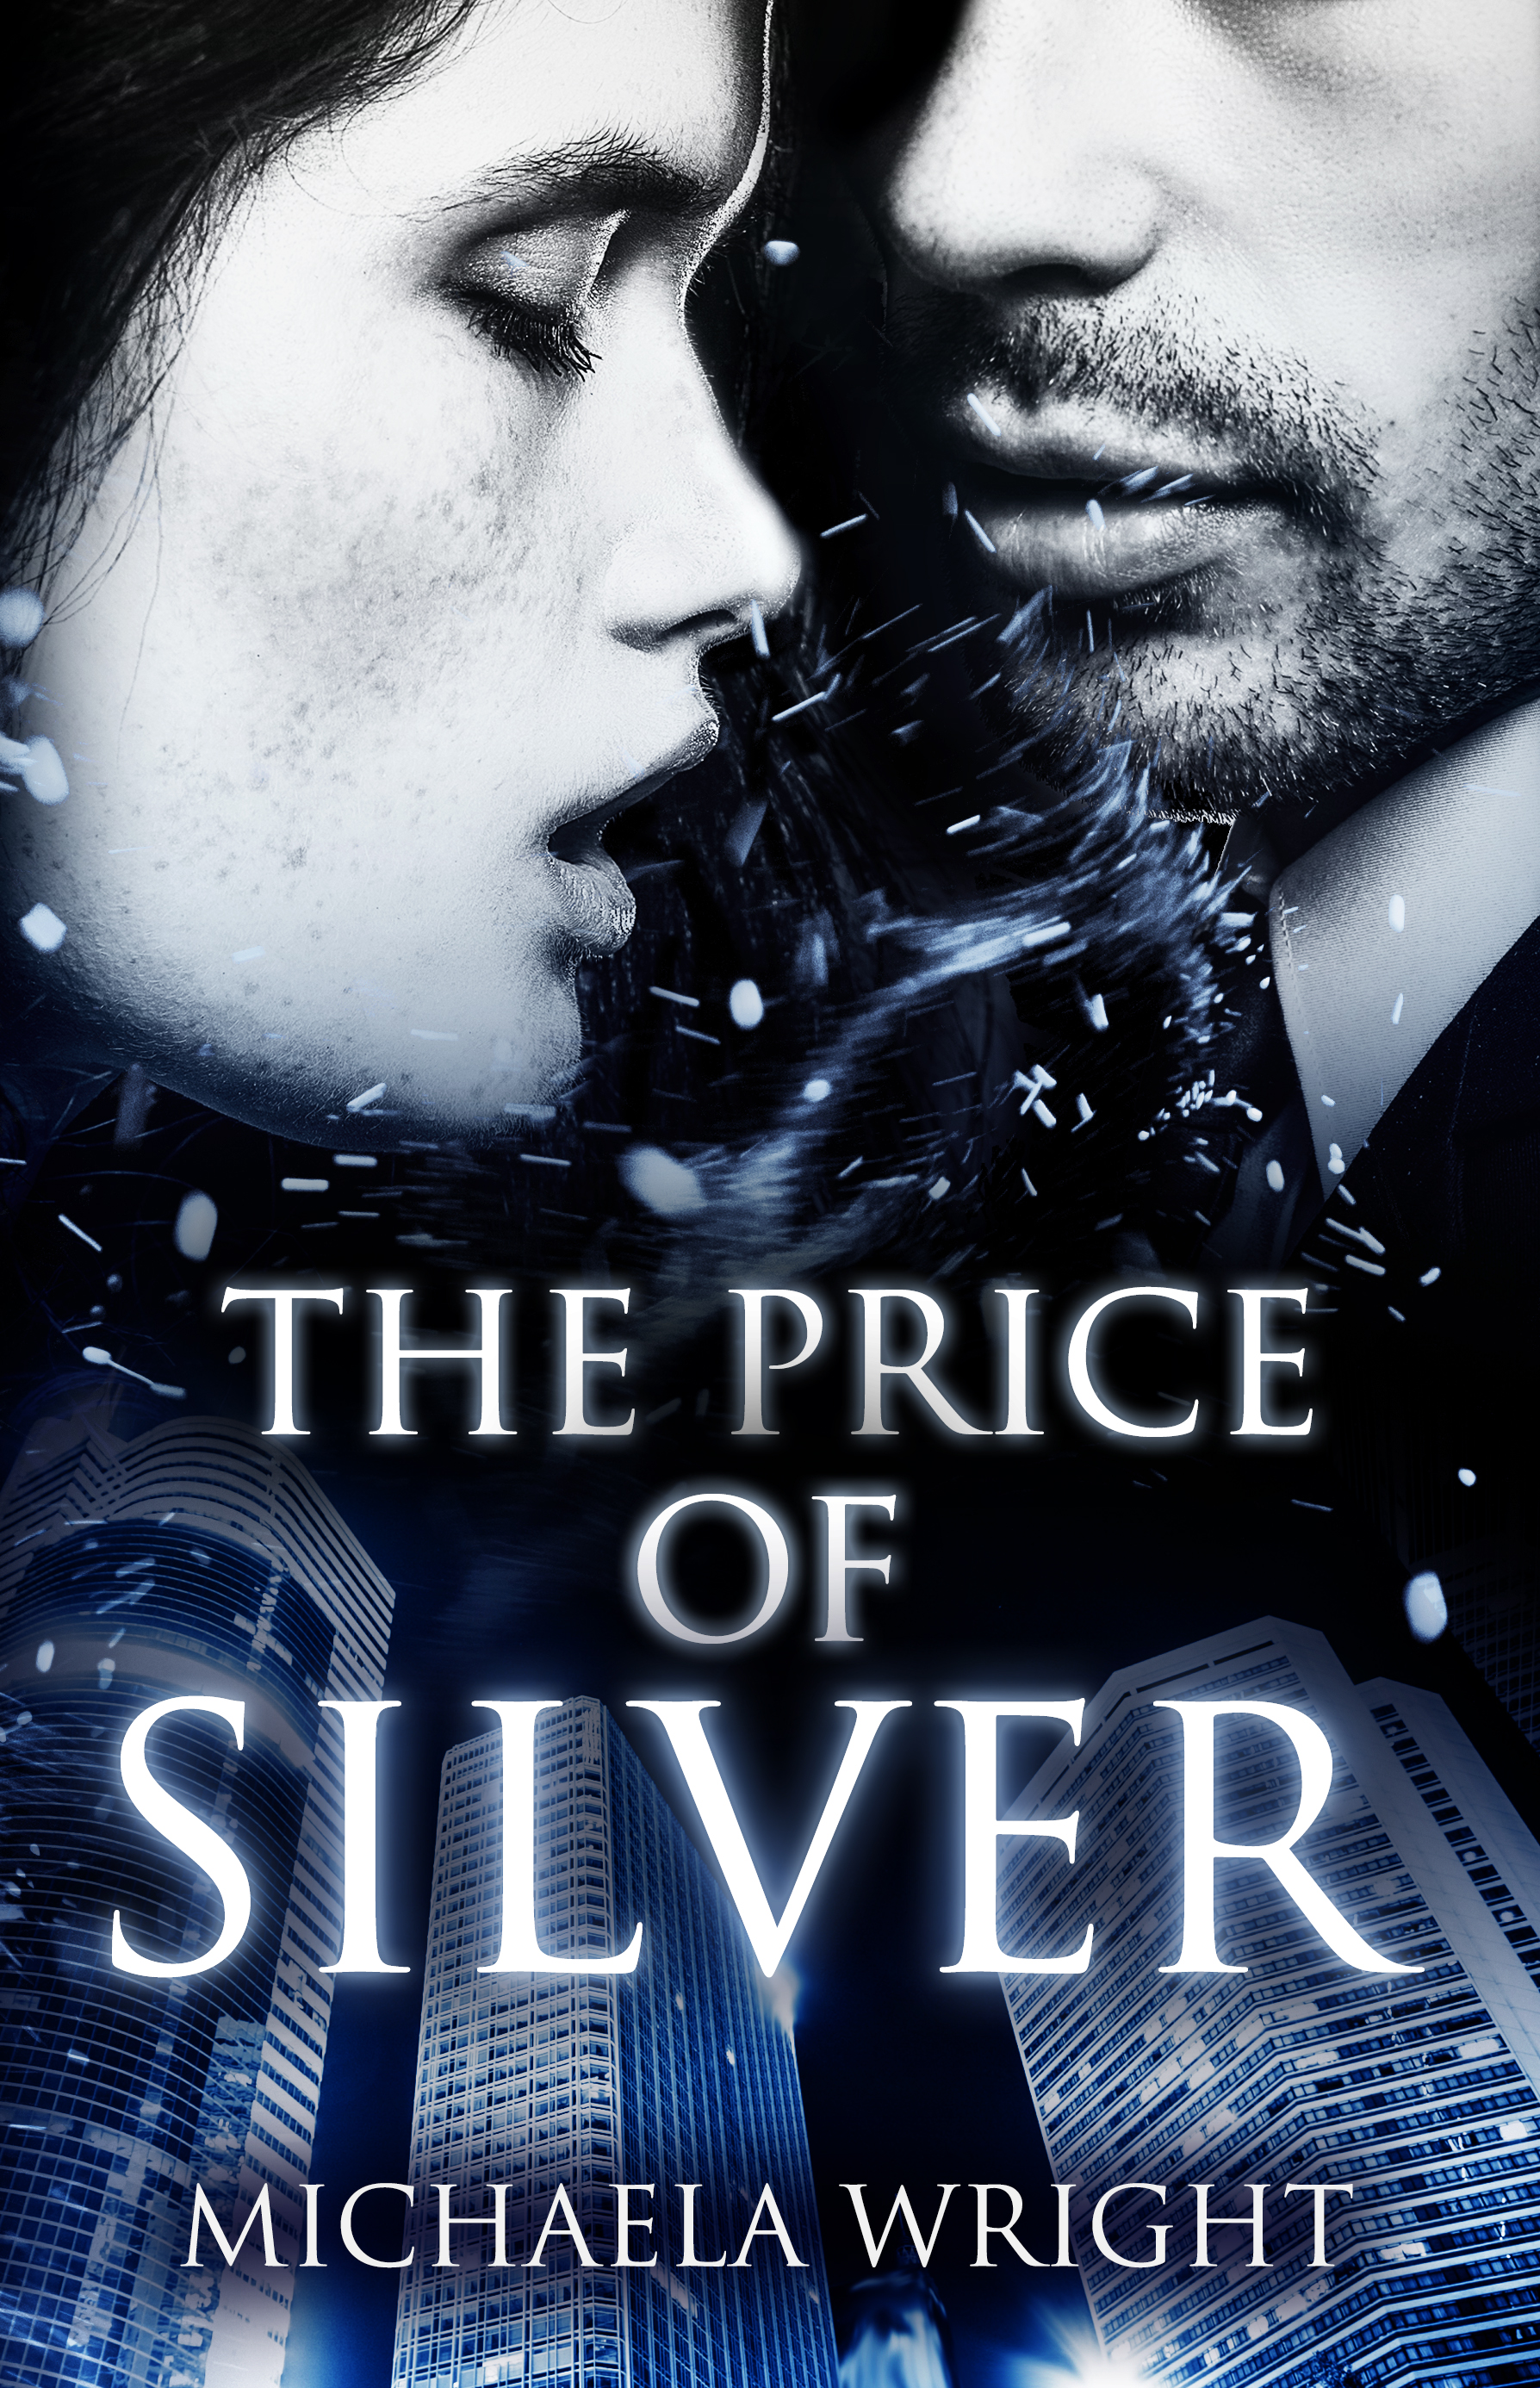 The Price of Silver by Michaela Wright